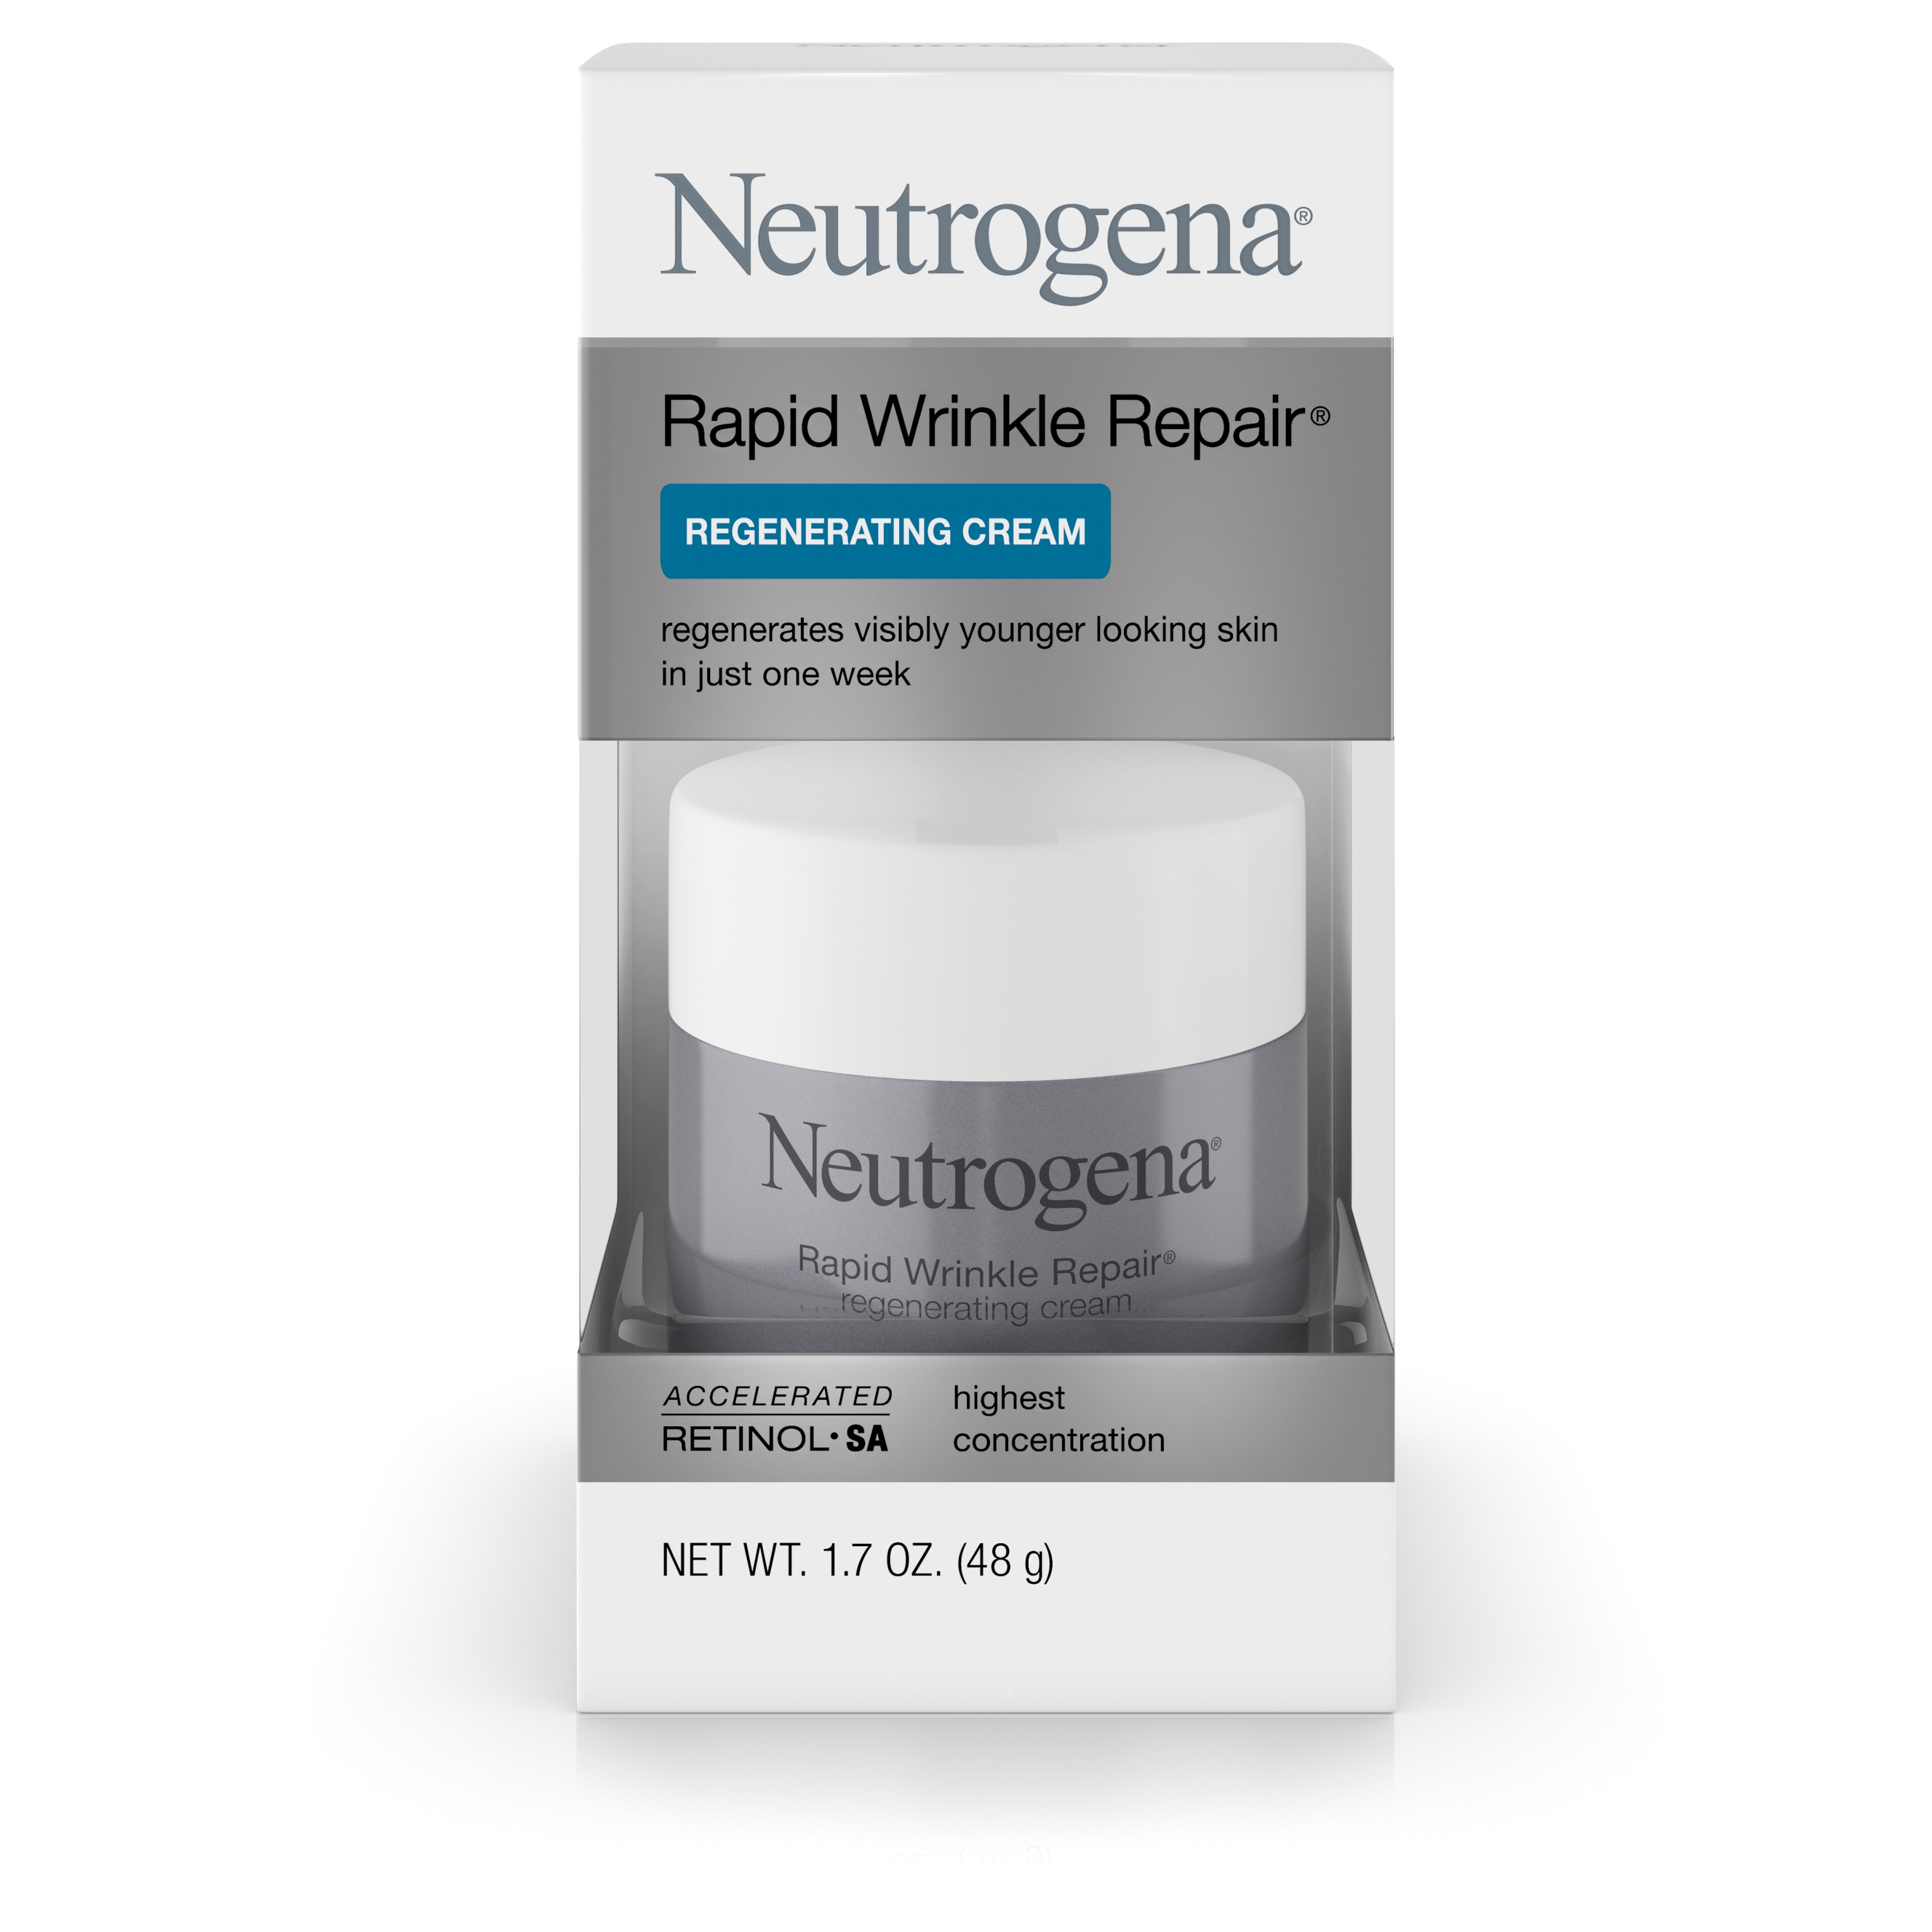 Neutrogena Rapid Wrinkle Repair Regenerating Cream, 1.7 Oz - Walmart.com